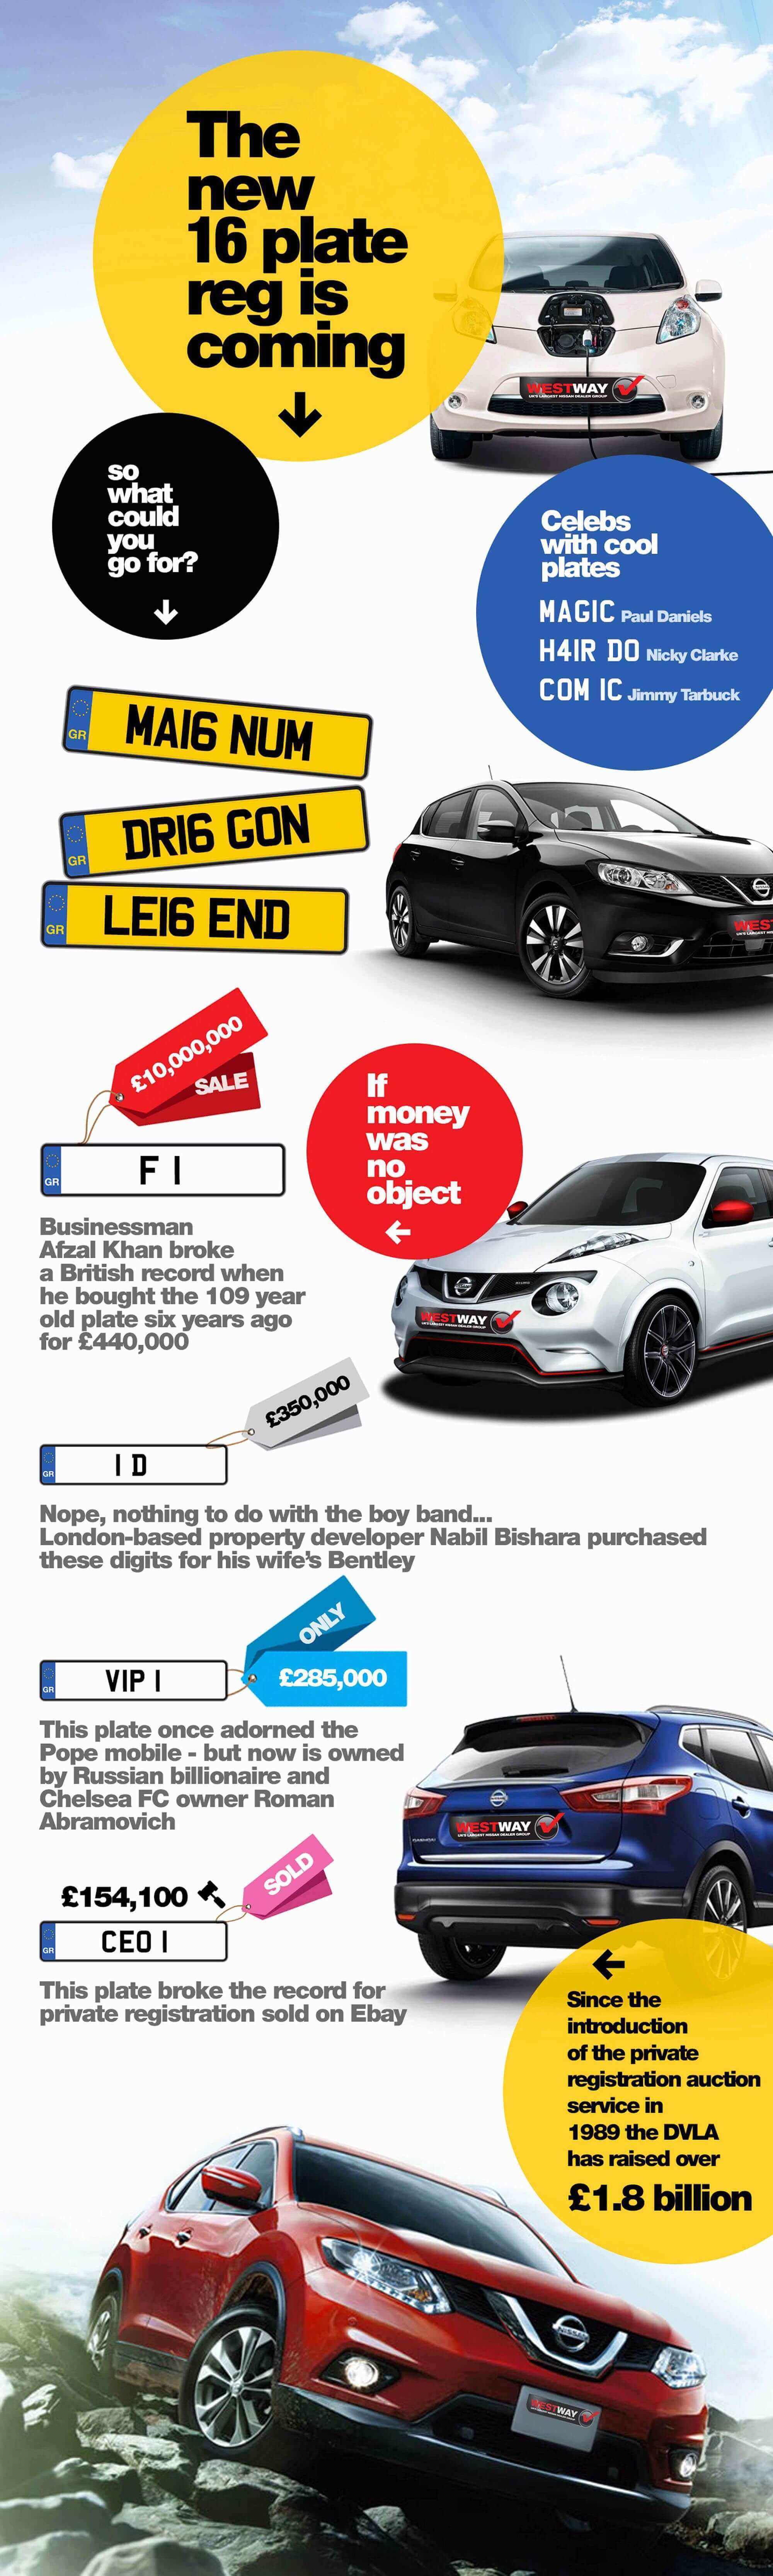 New 2016 Reg Plate Infographic